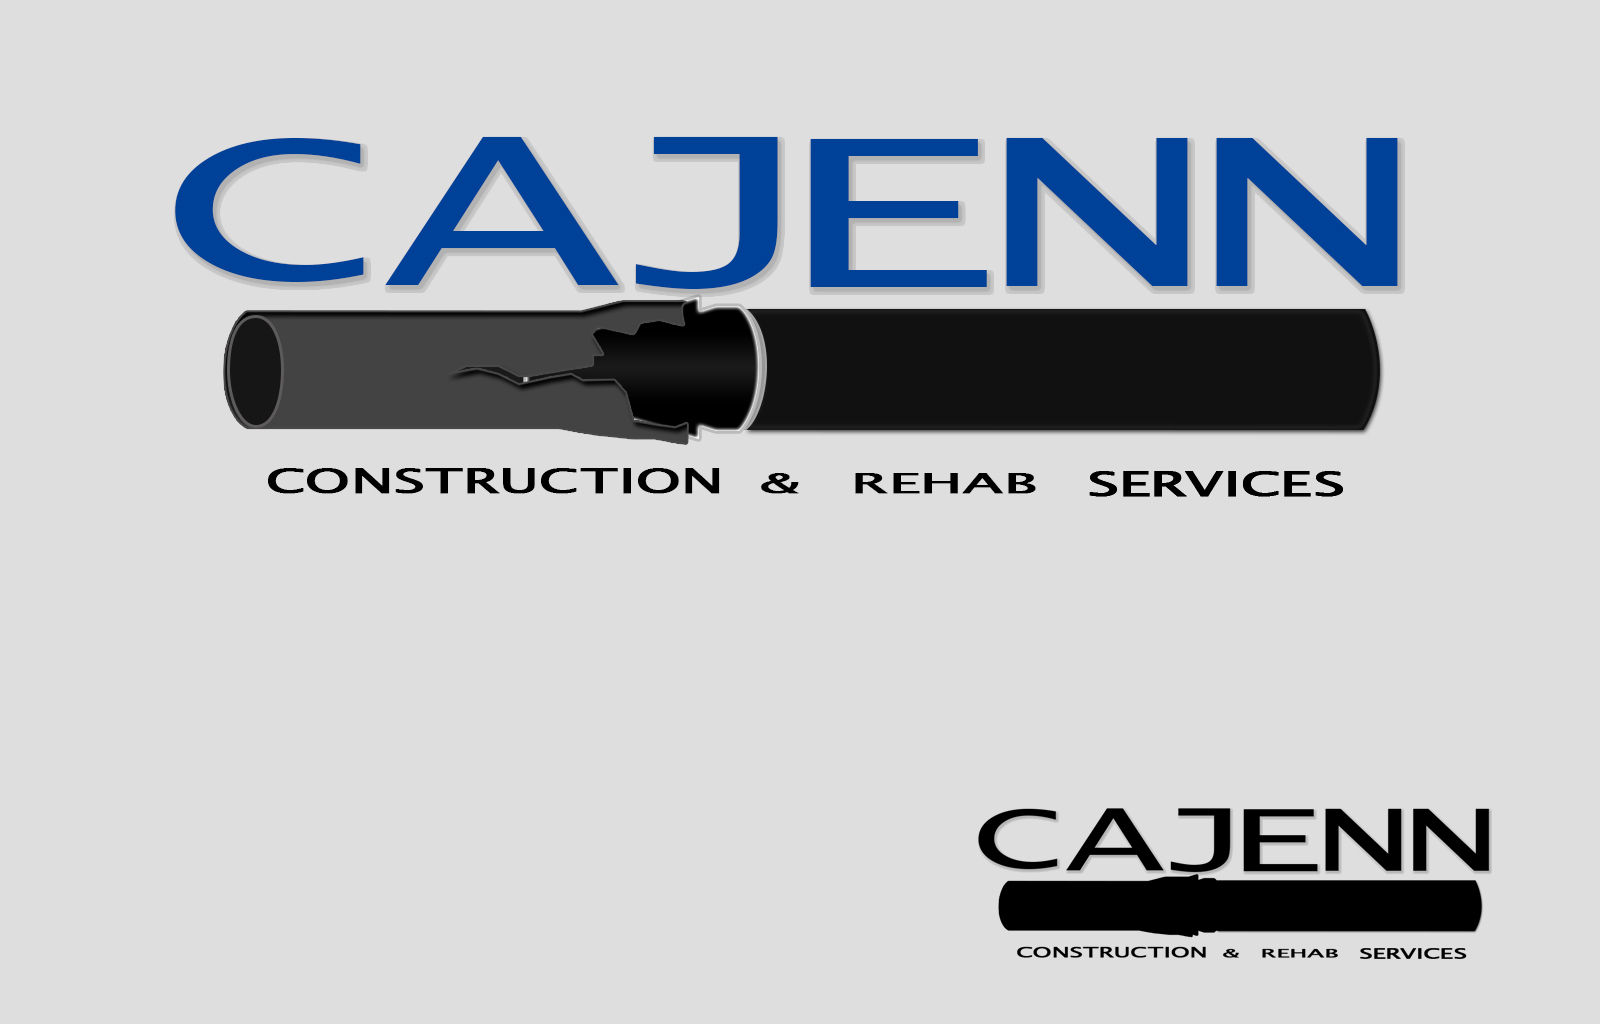 Logo Design by drunkman - Entry No. 173 in the Logo Design Contest New Logo Design for CaJenn Construction & Rehab Services.